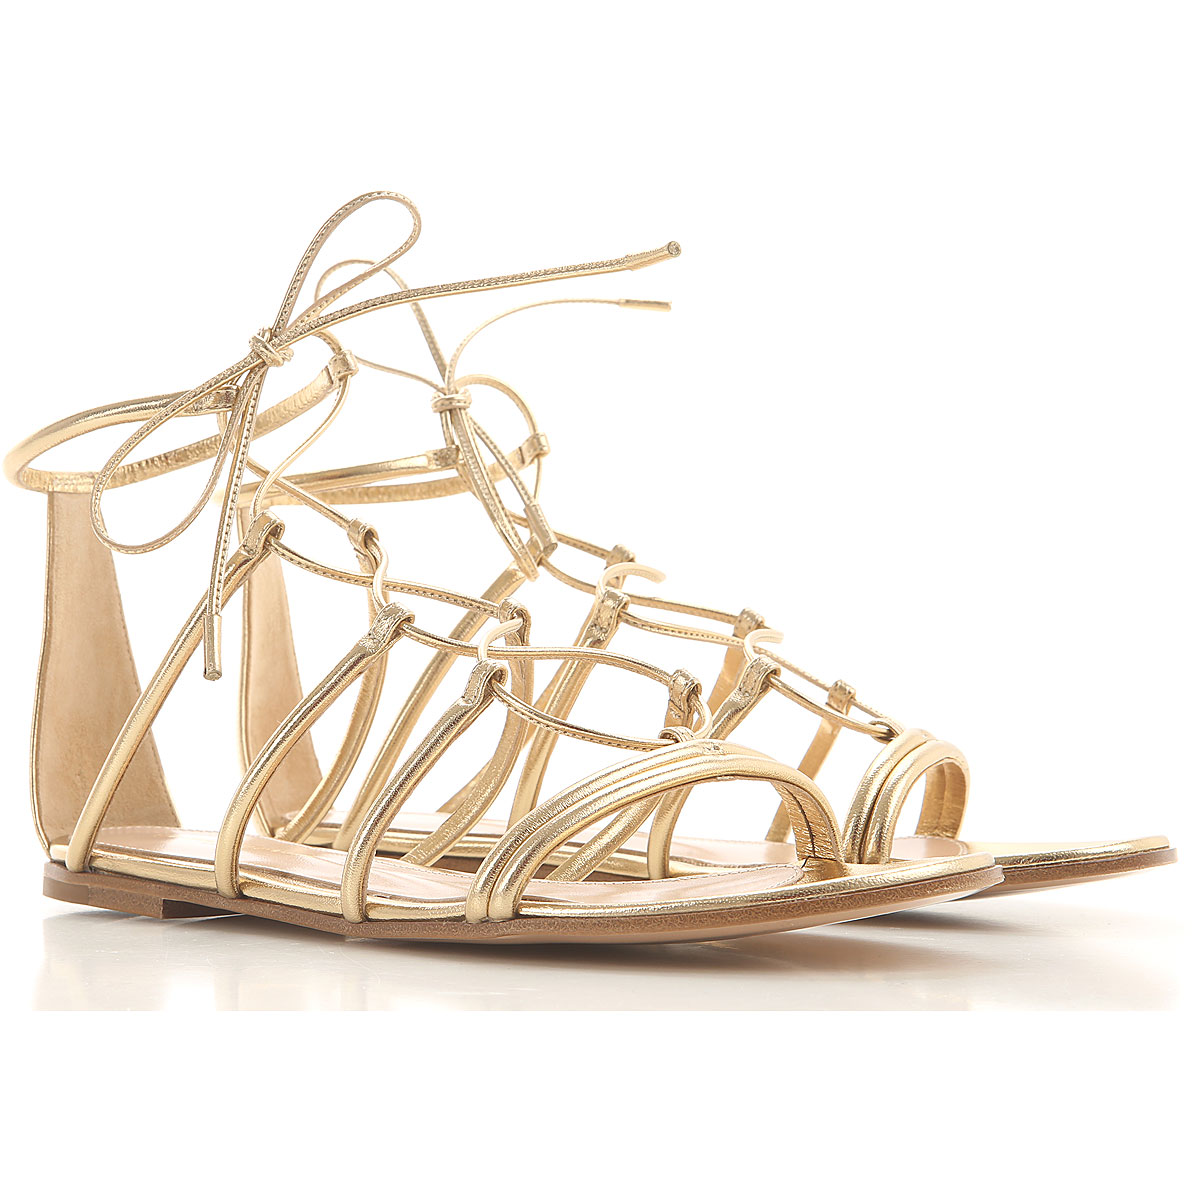 Gianvito Rossi Sandals for Women On Sale, Pale Gold, Leather, 2019, 10 11 6 6.5 7 8 8.5 9 9.5